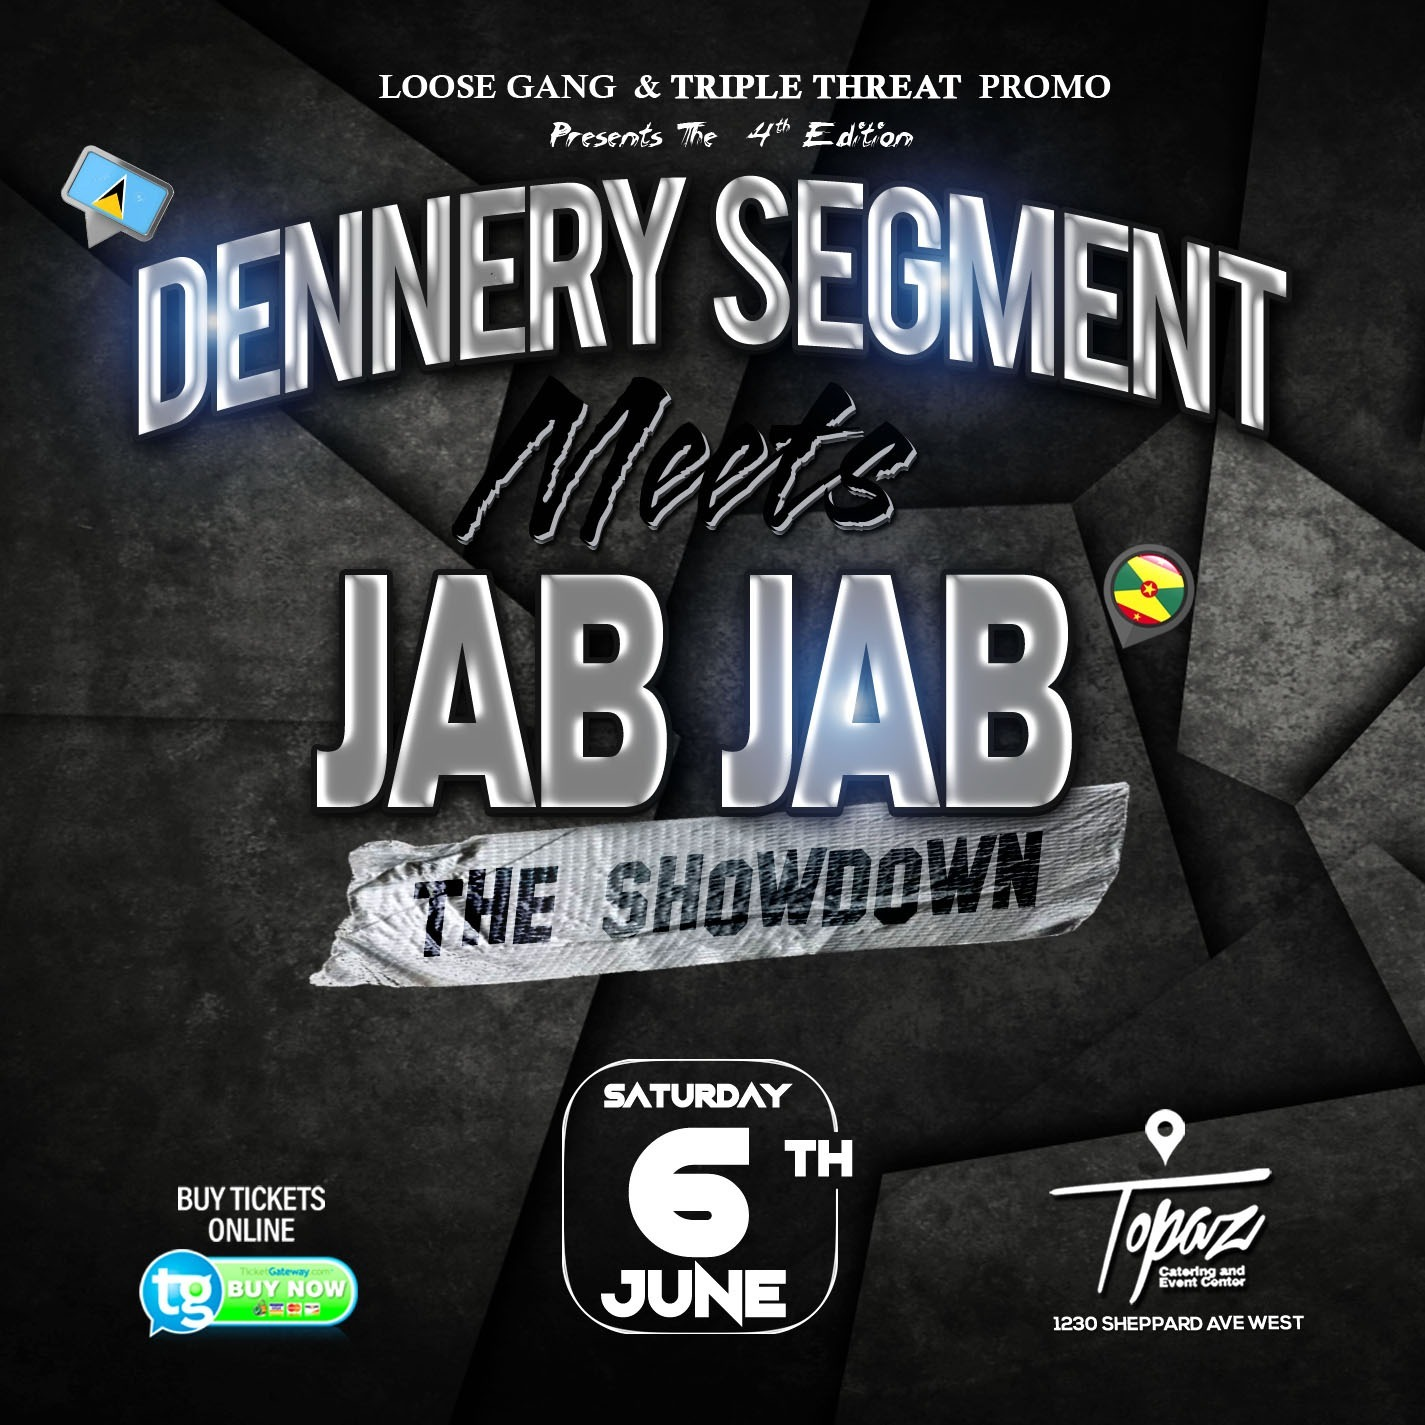 DENNERY SEGMENT MEETS JAB JAB 4th Edition